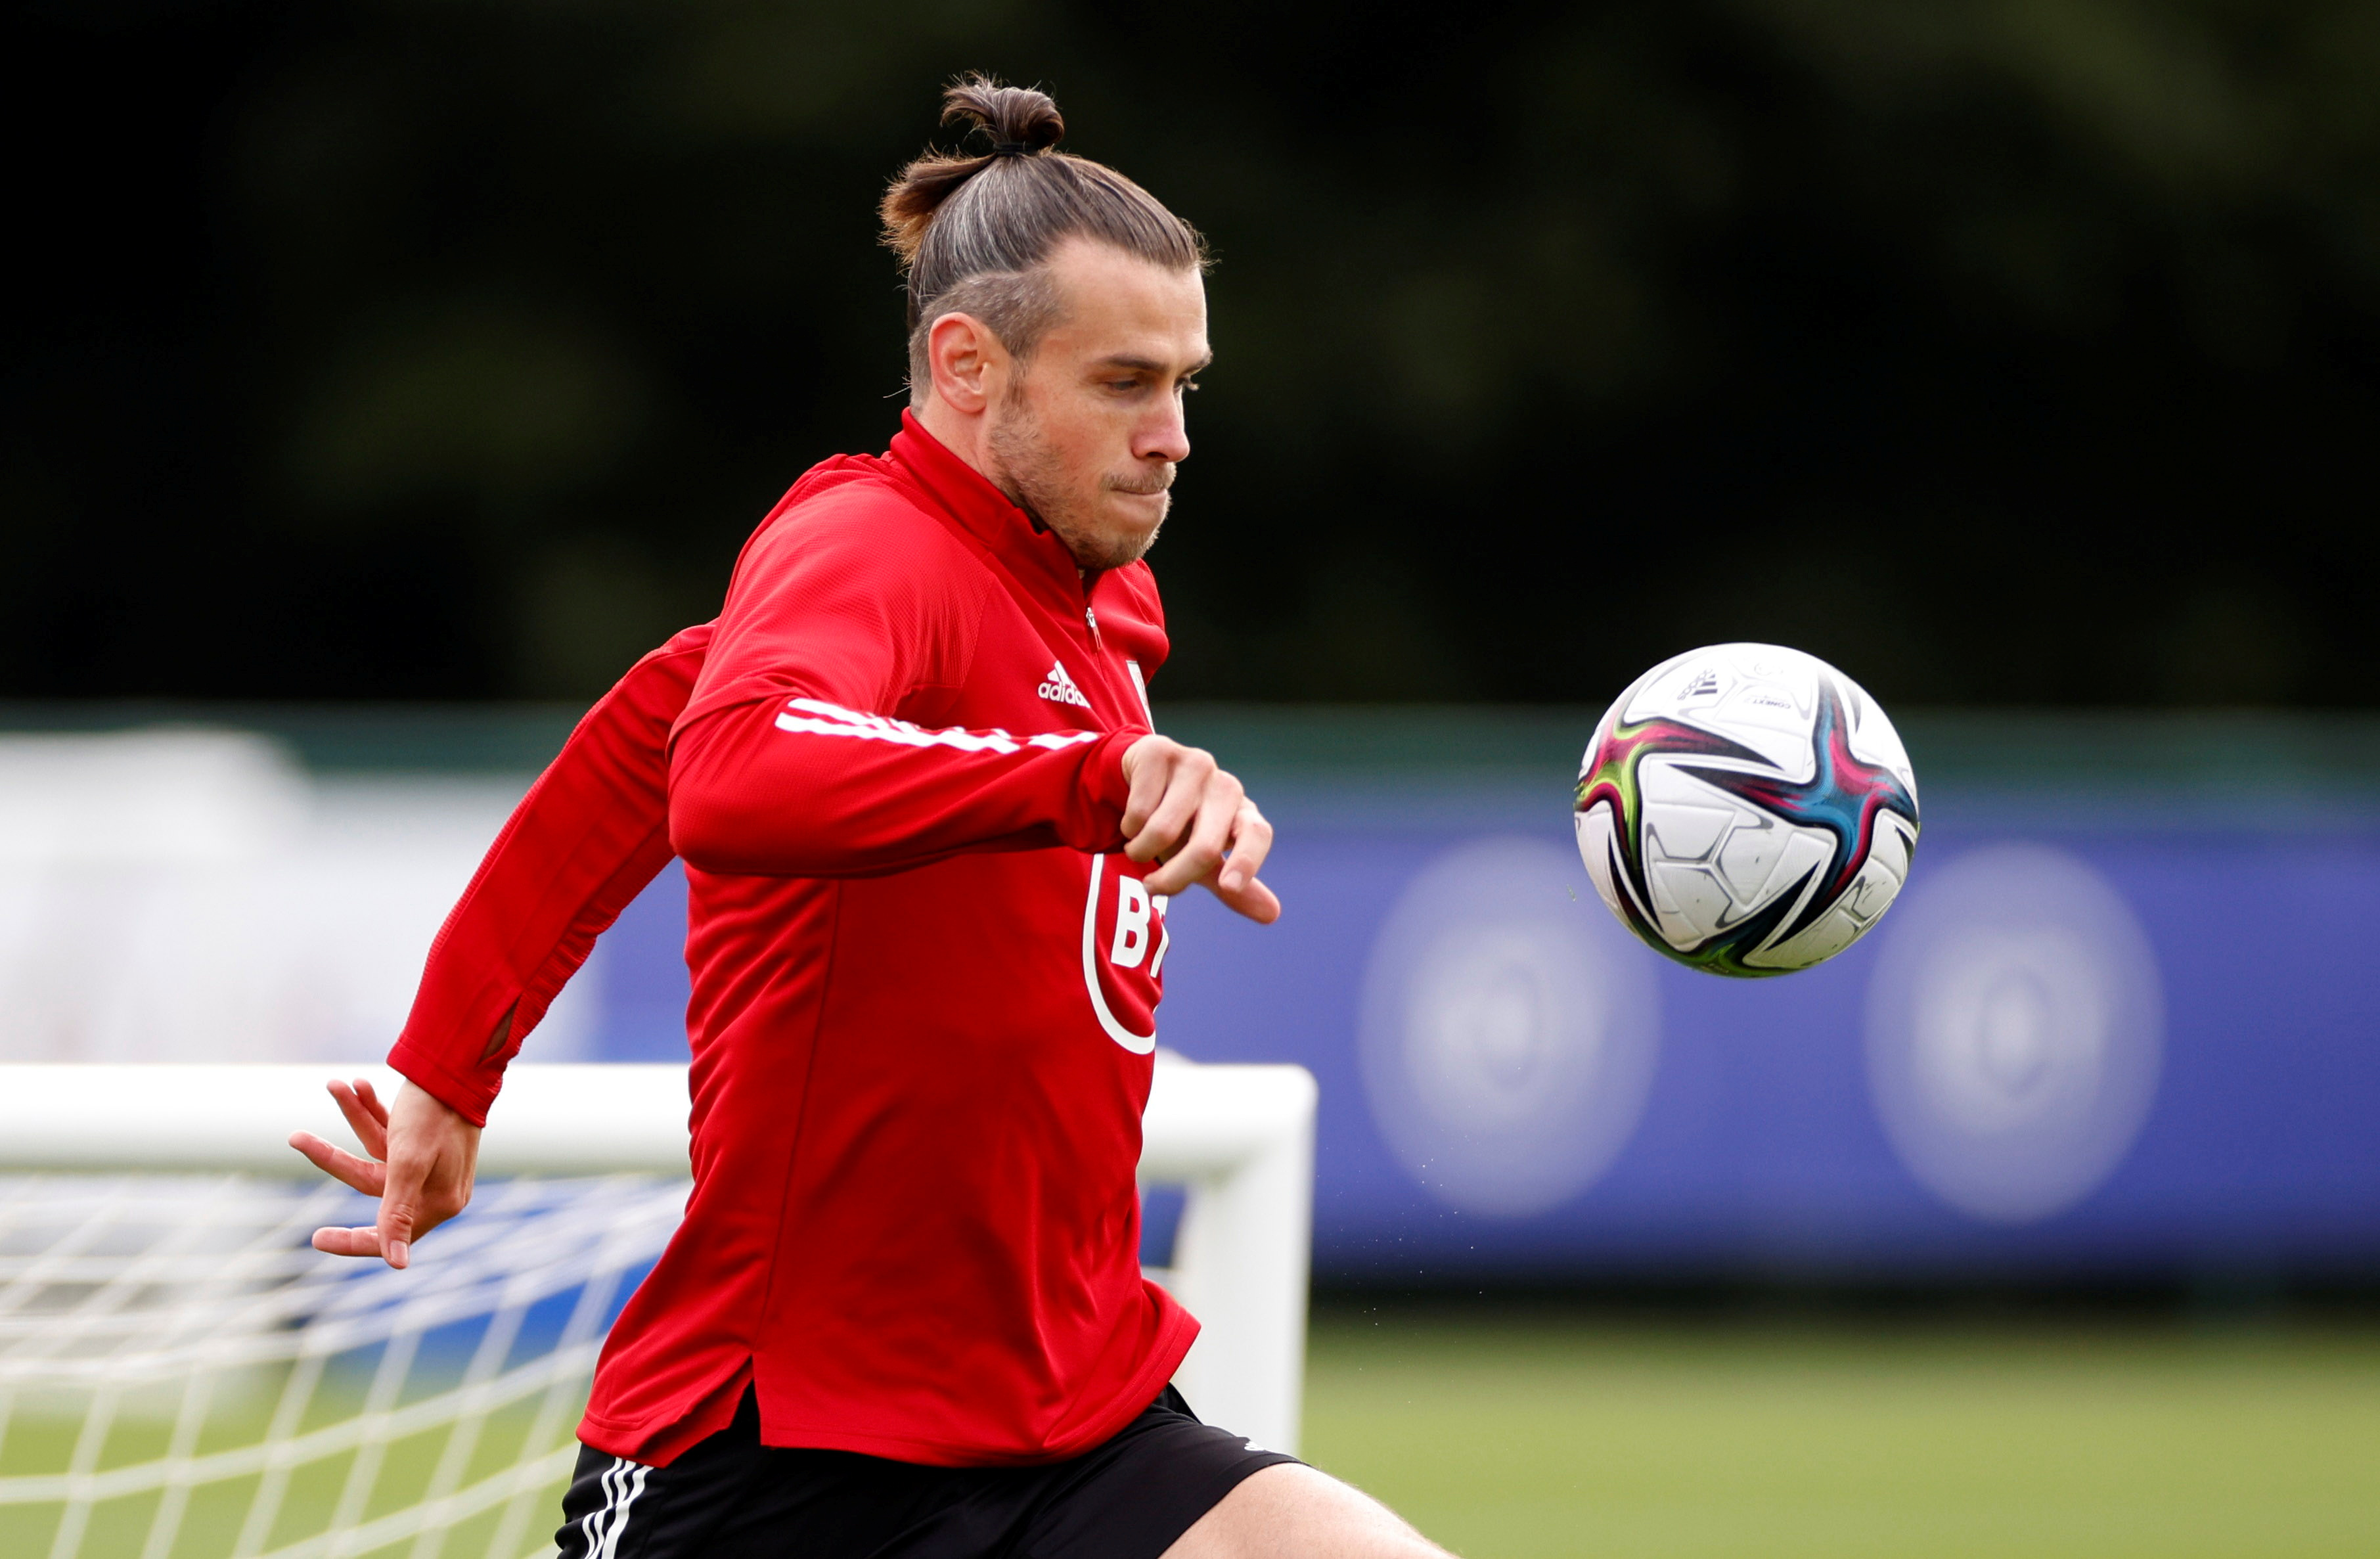 Soccer Football - Wales Training - Vale Resort, Hensol, Wales, Britain - August 31, 2021 Wales' Gareth Bale during training Action Images via Reuters/John Sibley